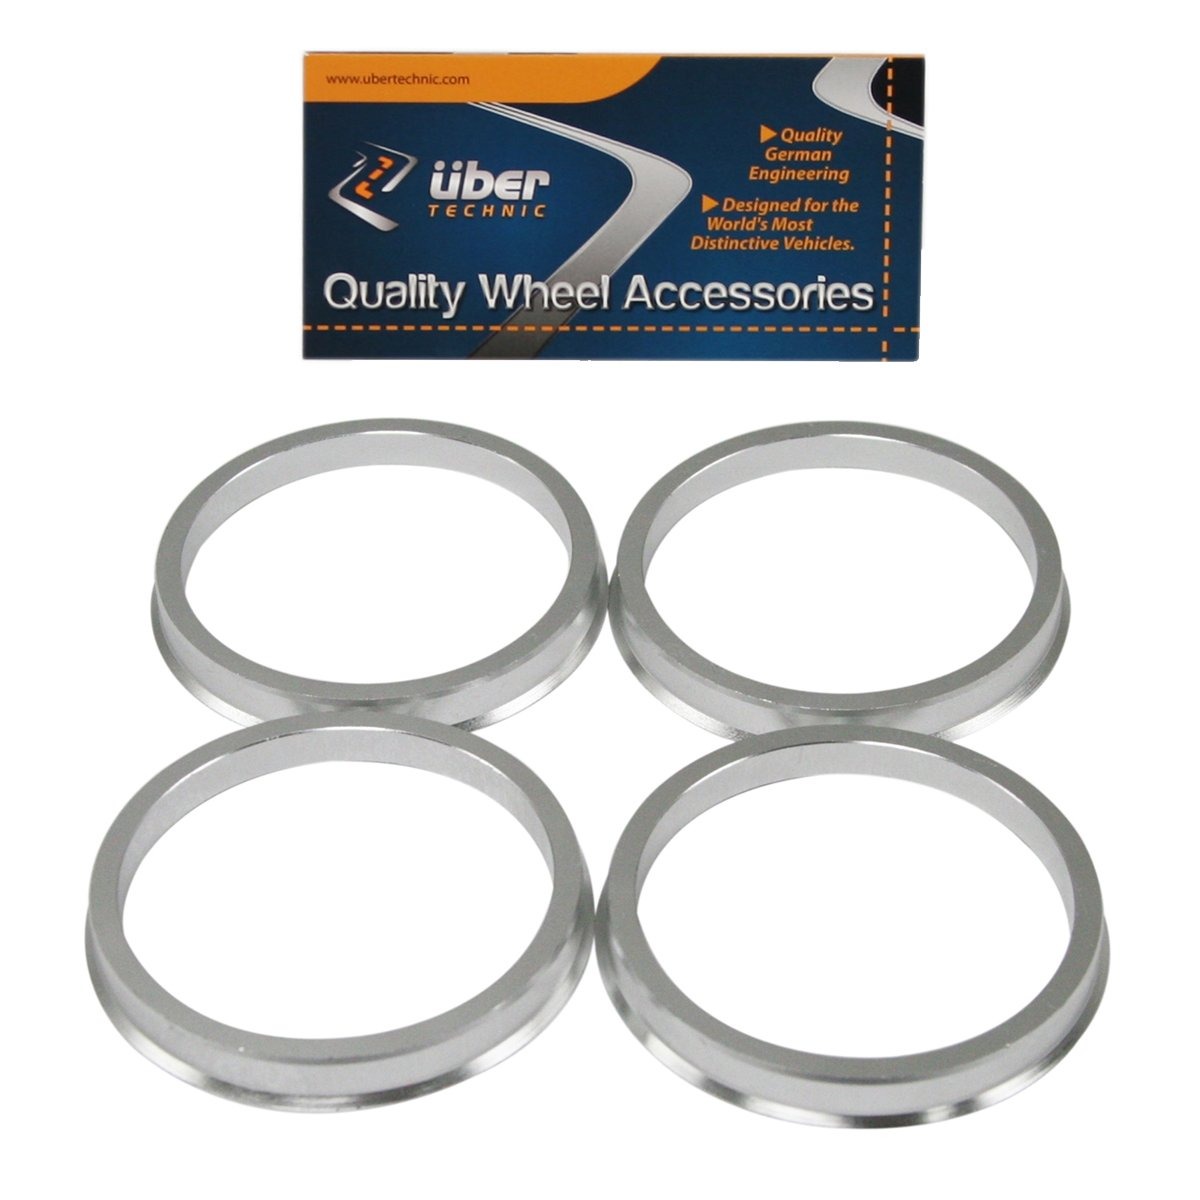 UberTechnic Hubcentric Rings - 57.1mm ID to 72.6mm OD - Billet Aluminum Hubrings - Only Fits 57.1mm Vehicle Hub & 72.6mm Wheel Centerbore - Hub Centric Centering Rings (Pack of 4)